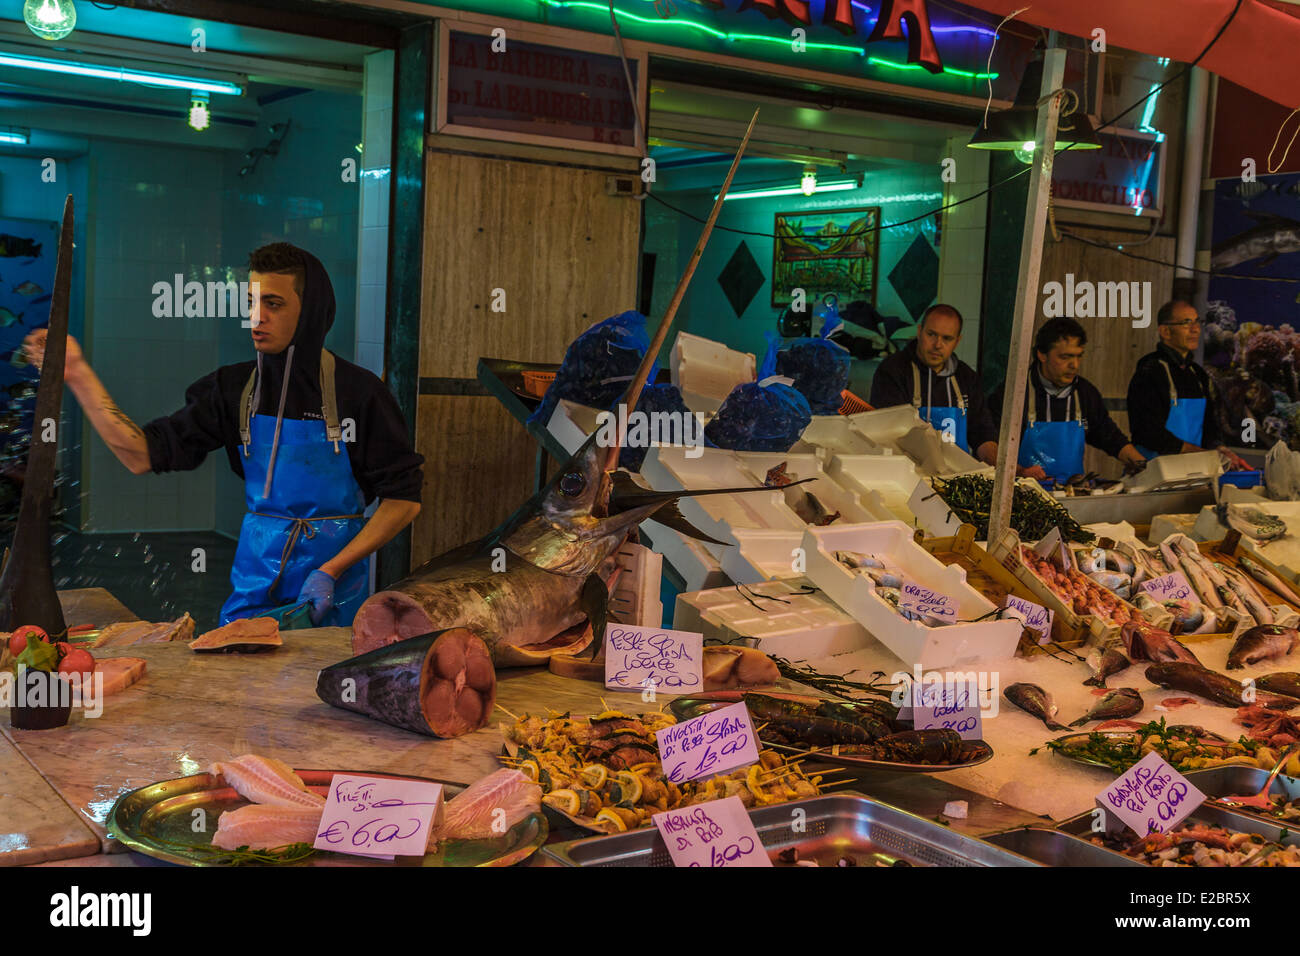 Ballarò, famous seafood market in Palermo - Stock Image